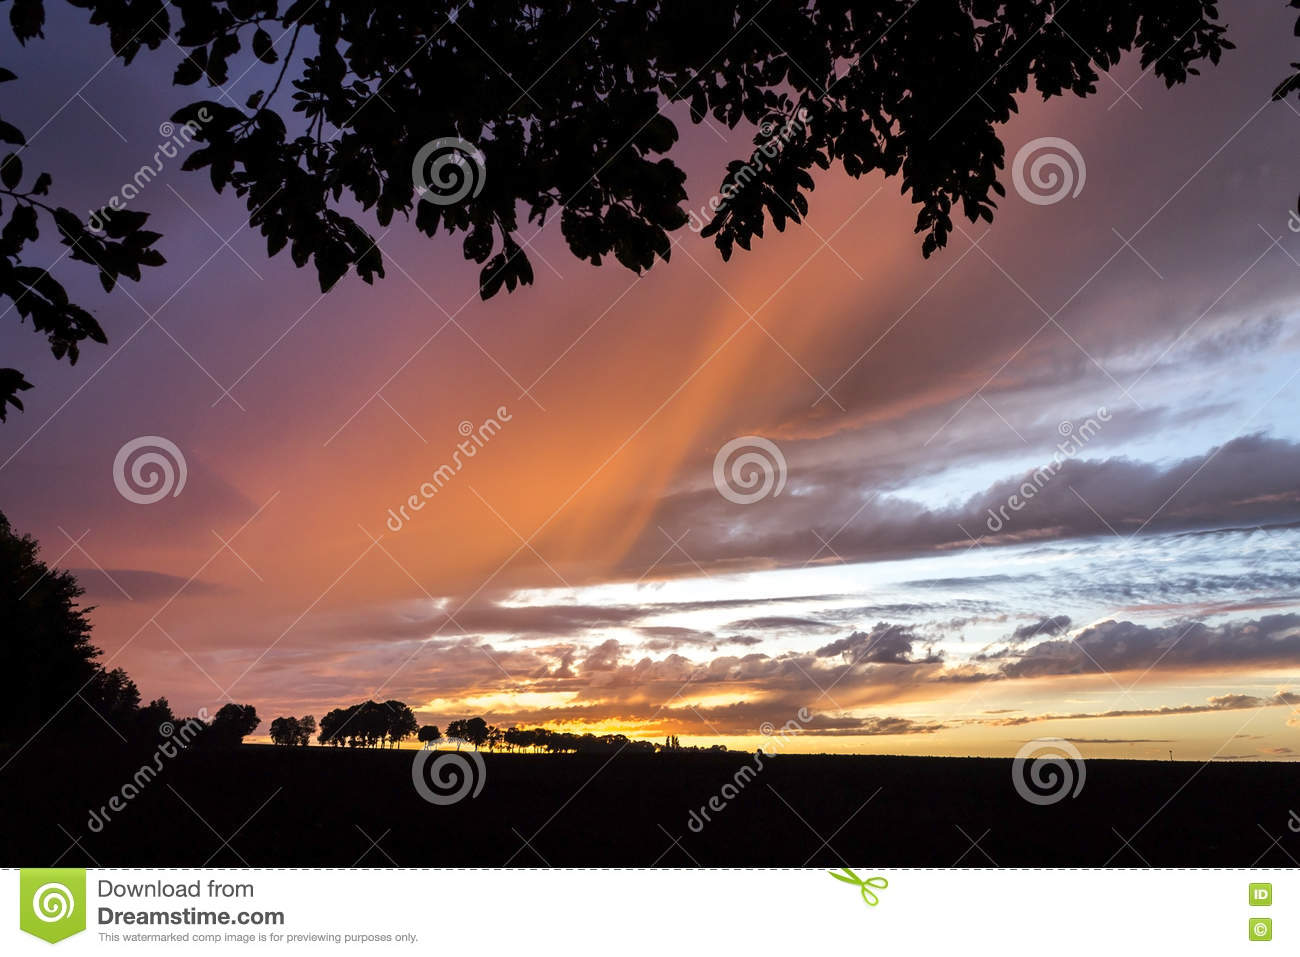 Sunset Autumn or Summer Sky with Trees